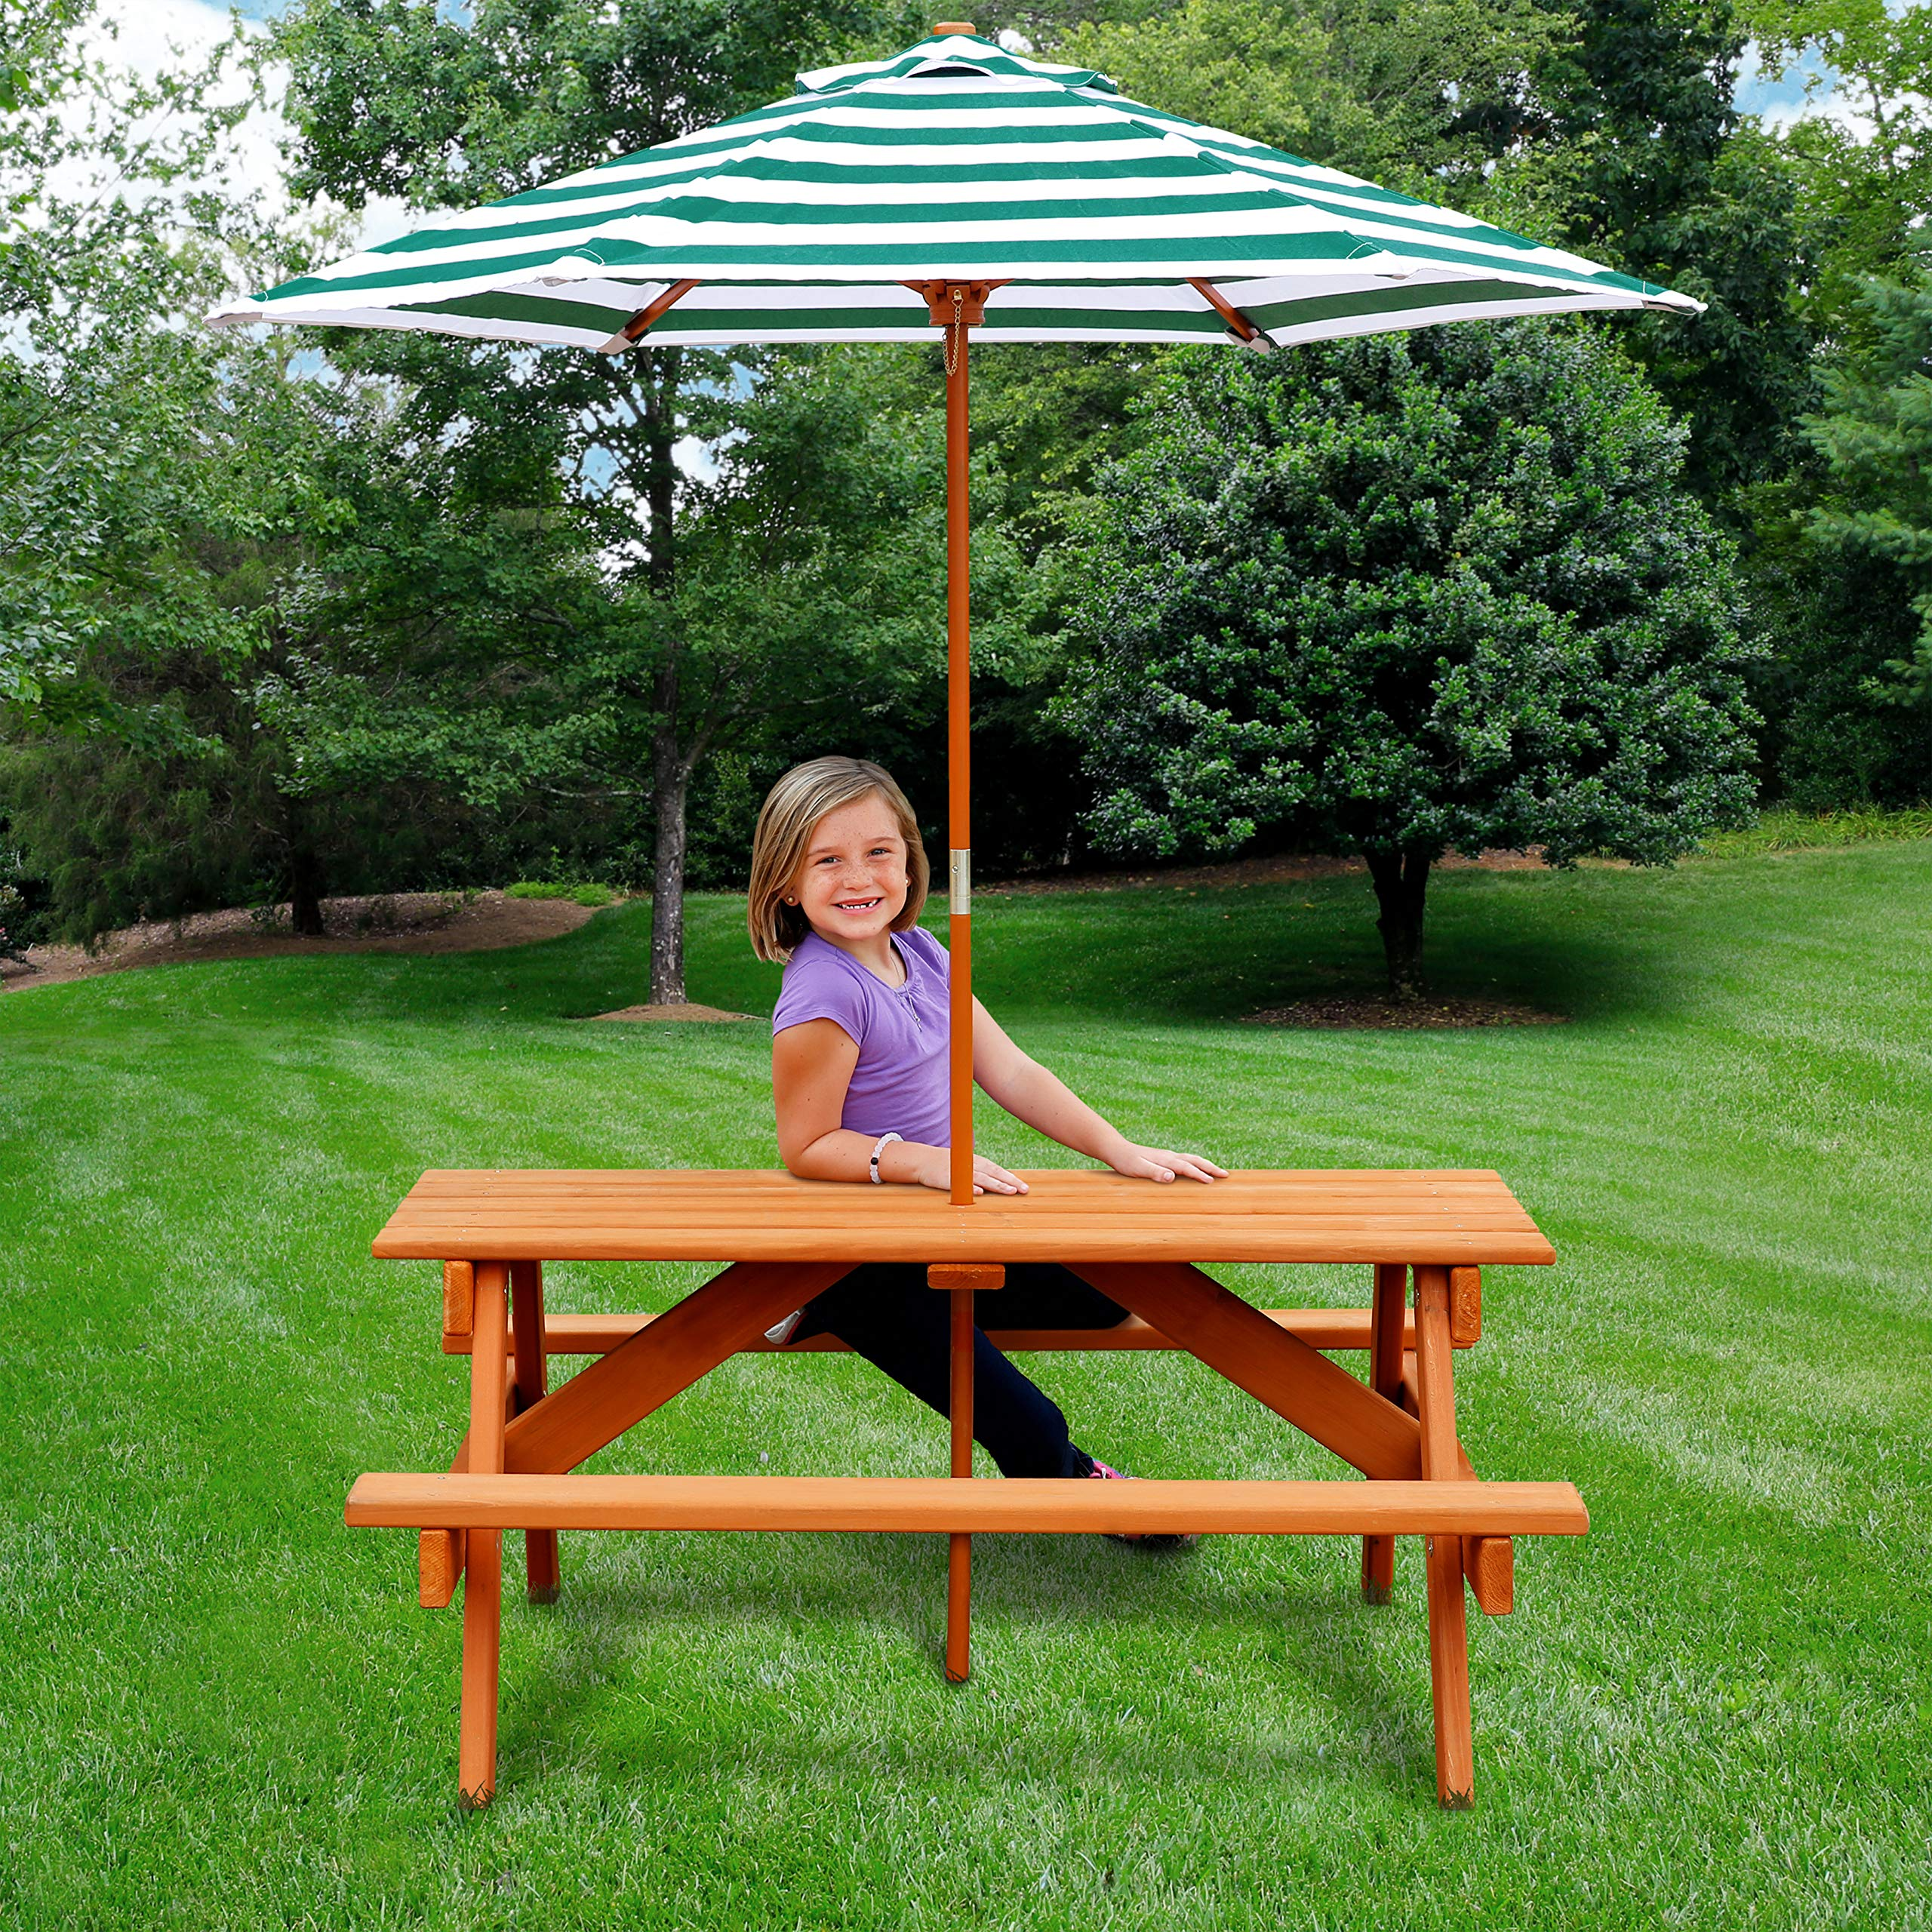 Jur_Global Wooden Children's Picnic Table with Umbrella by Jur_Global (Image #4)